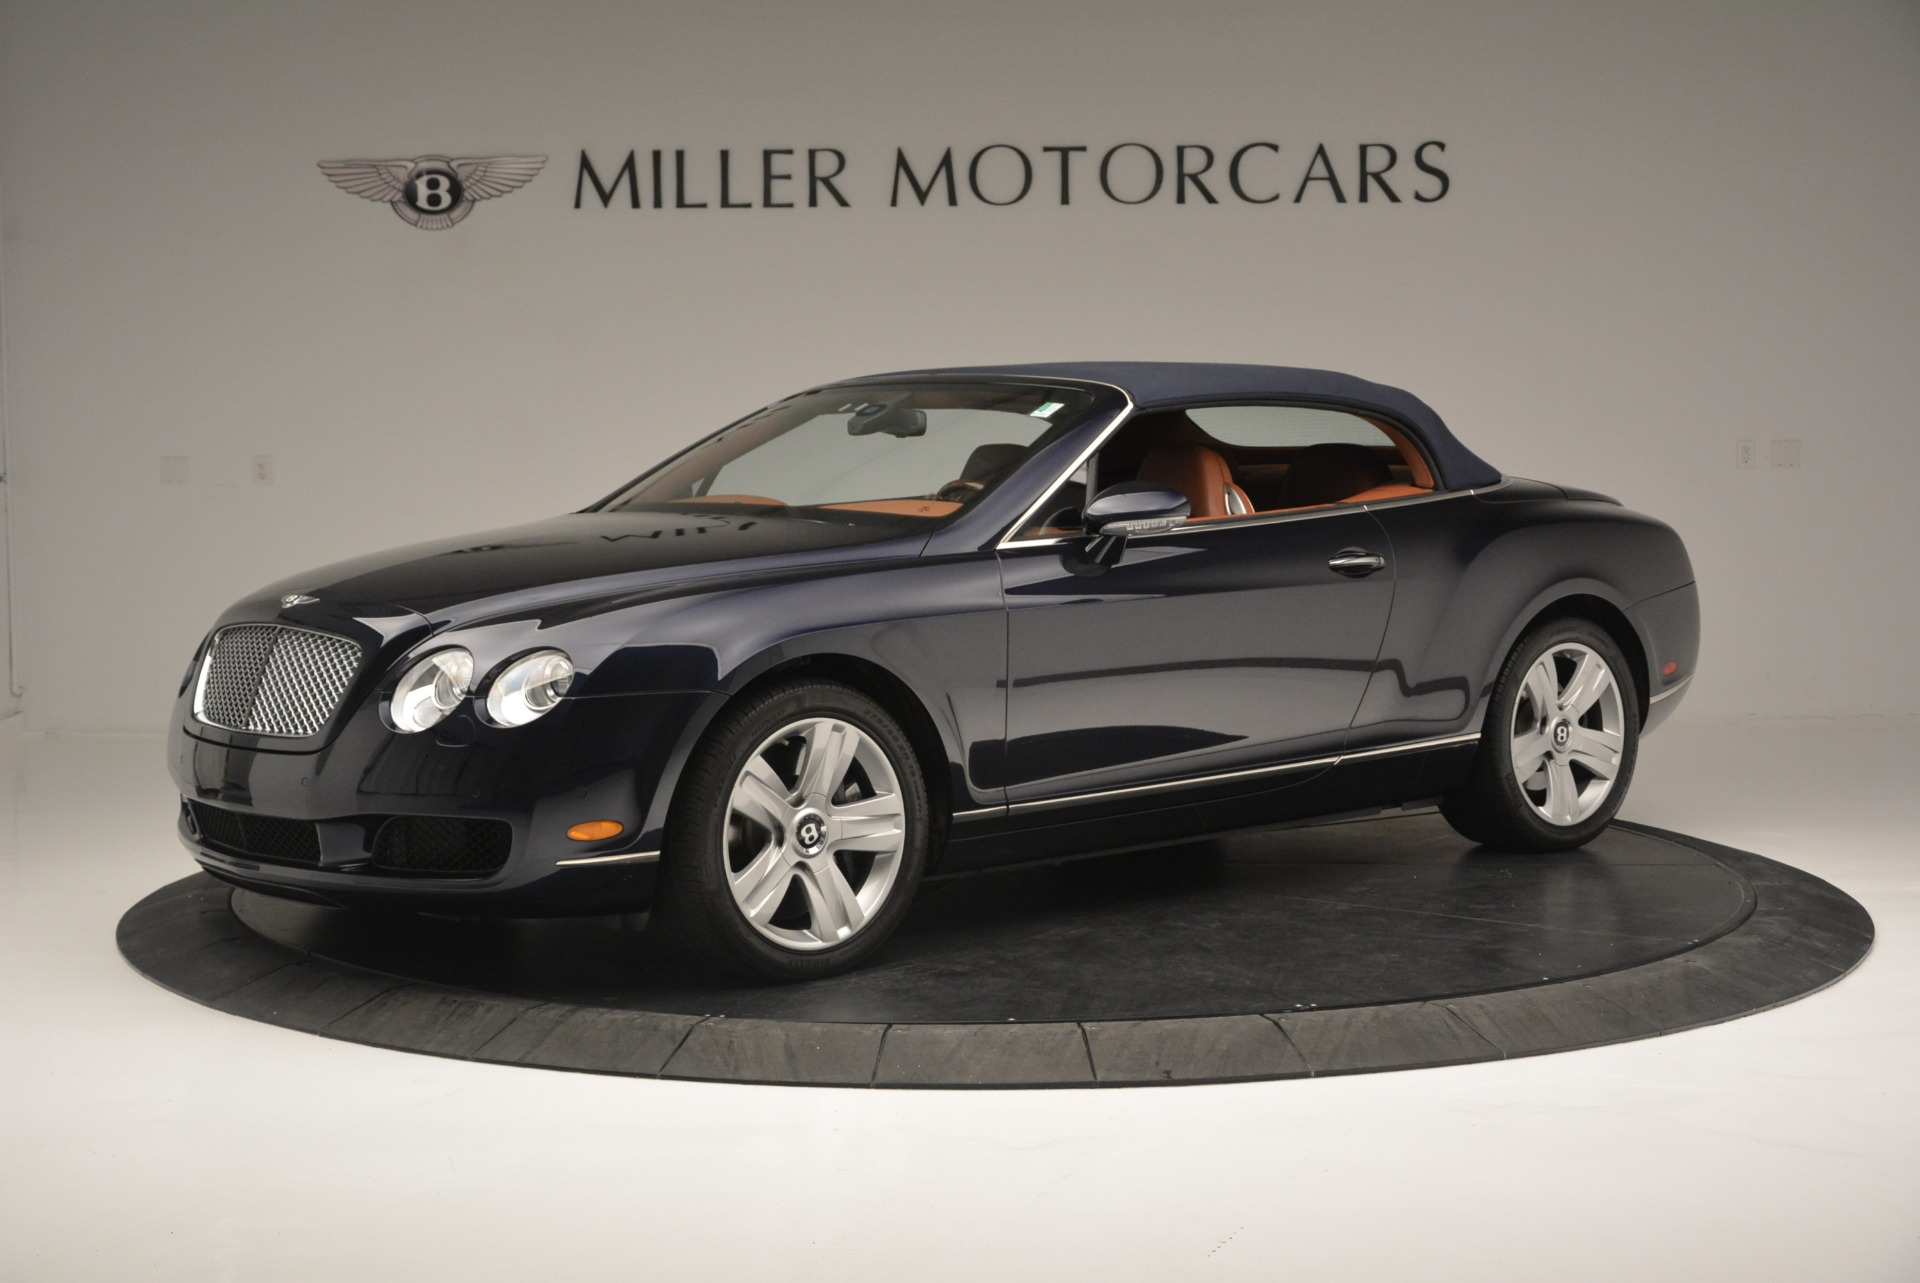 Used 2008 Bentley Continental GTC  For Sale In Westport, CT 2307_p12